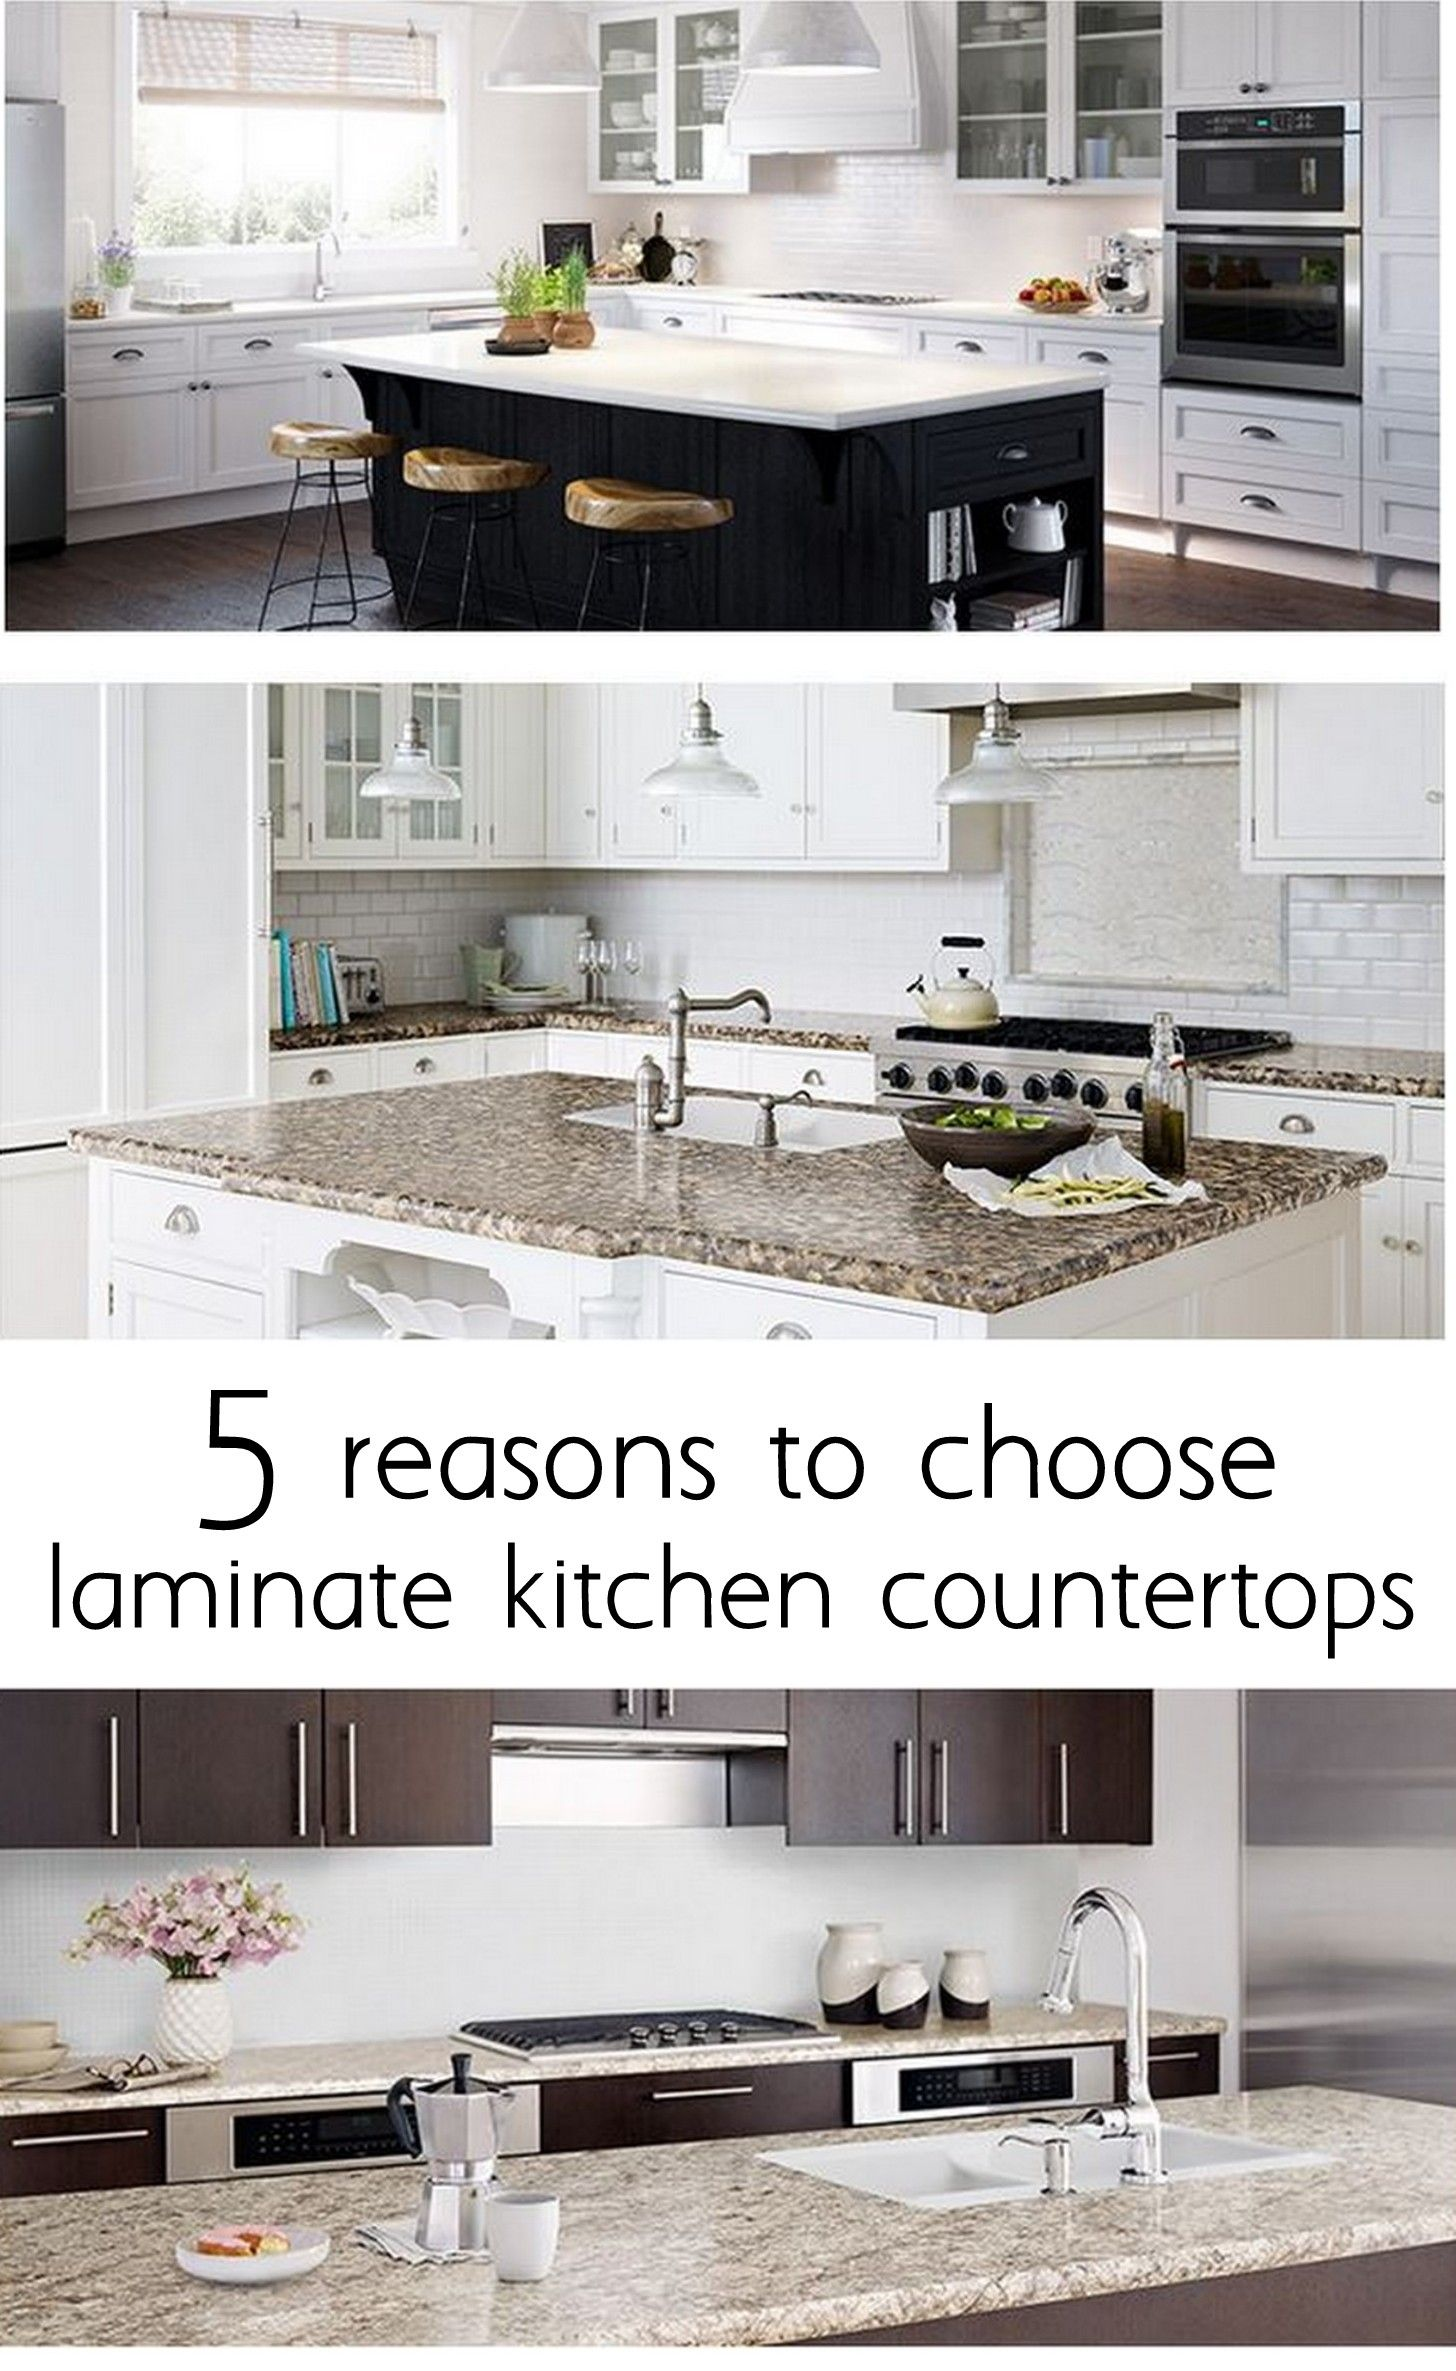 reasons to choose laminate kitchen countertops i like the on 69 Types Of Kitchen Tiles To Choose For A New Kitchen Design id=40166